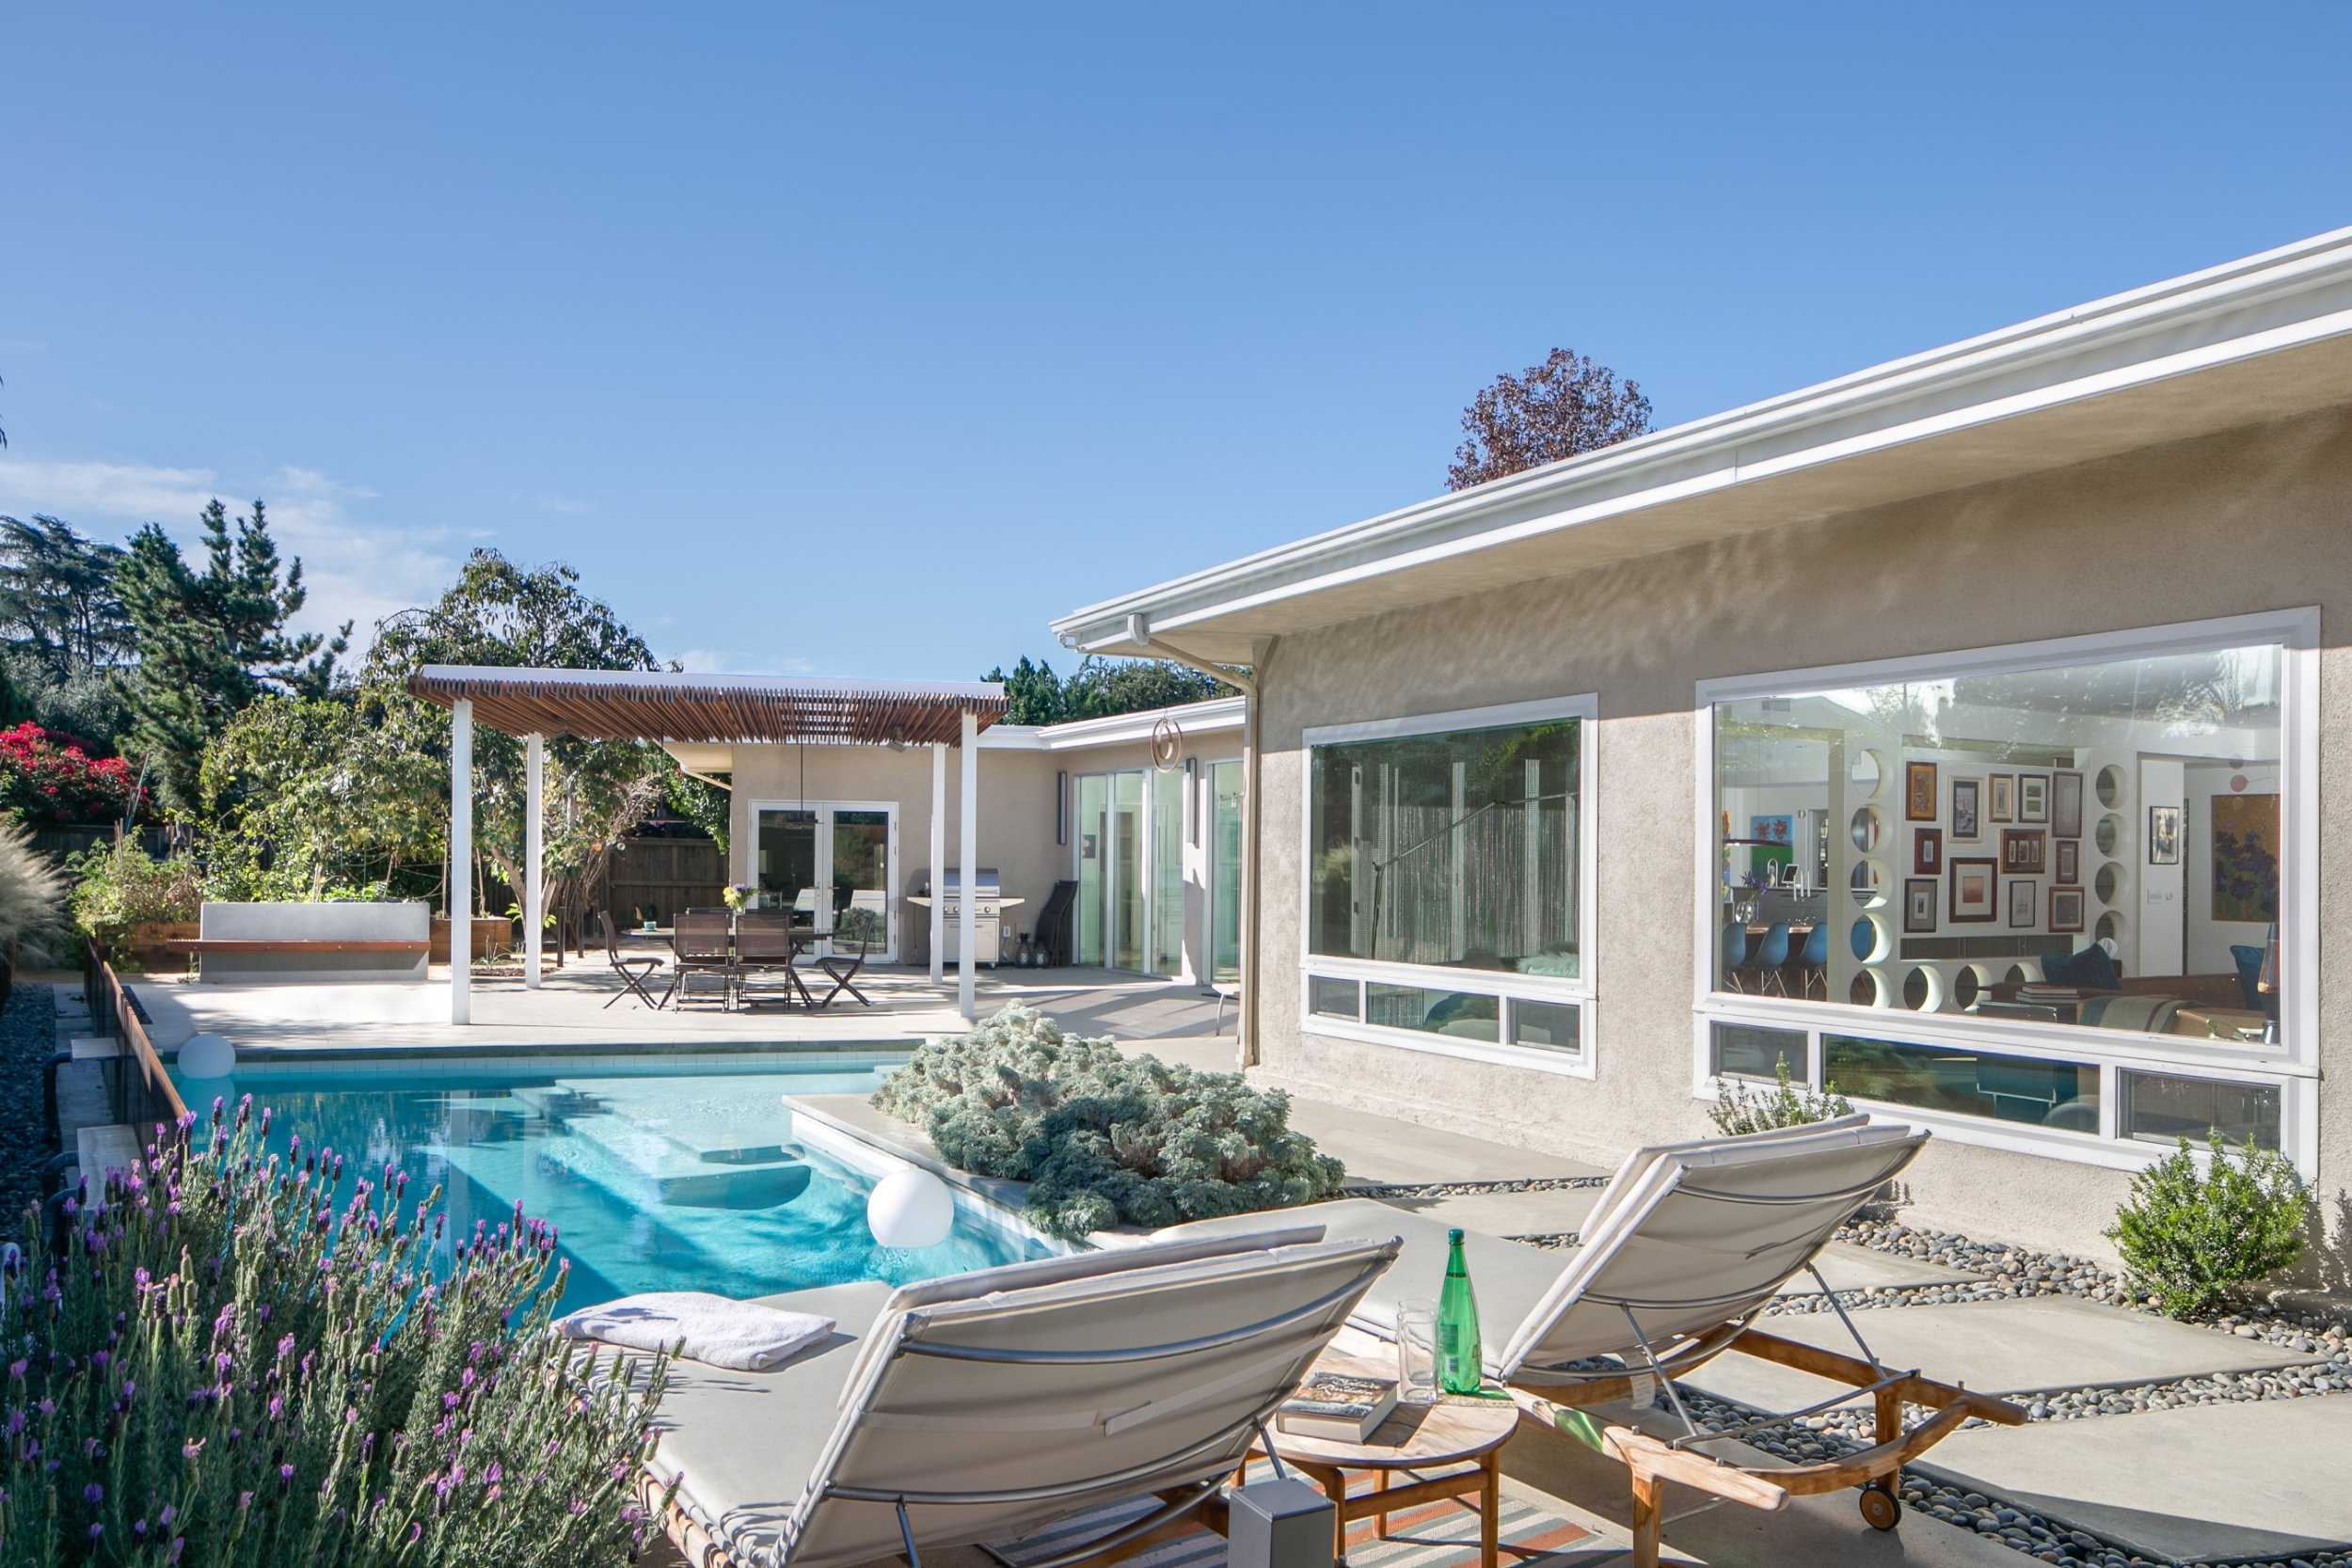 Mid-century modern outdoor living: lounging by the pool while enjoying the view and the aromas